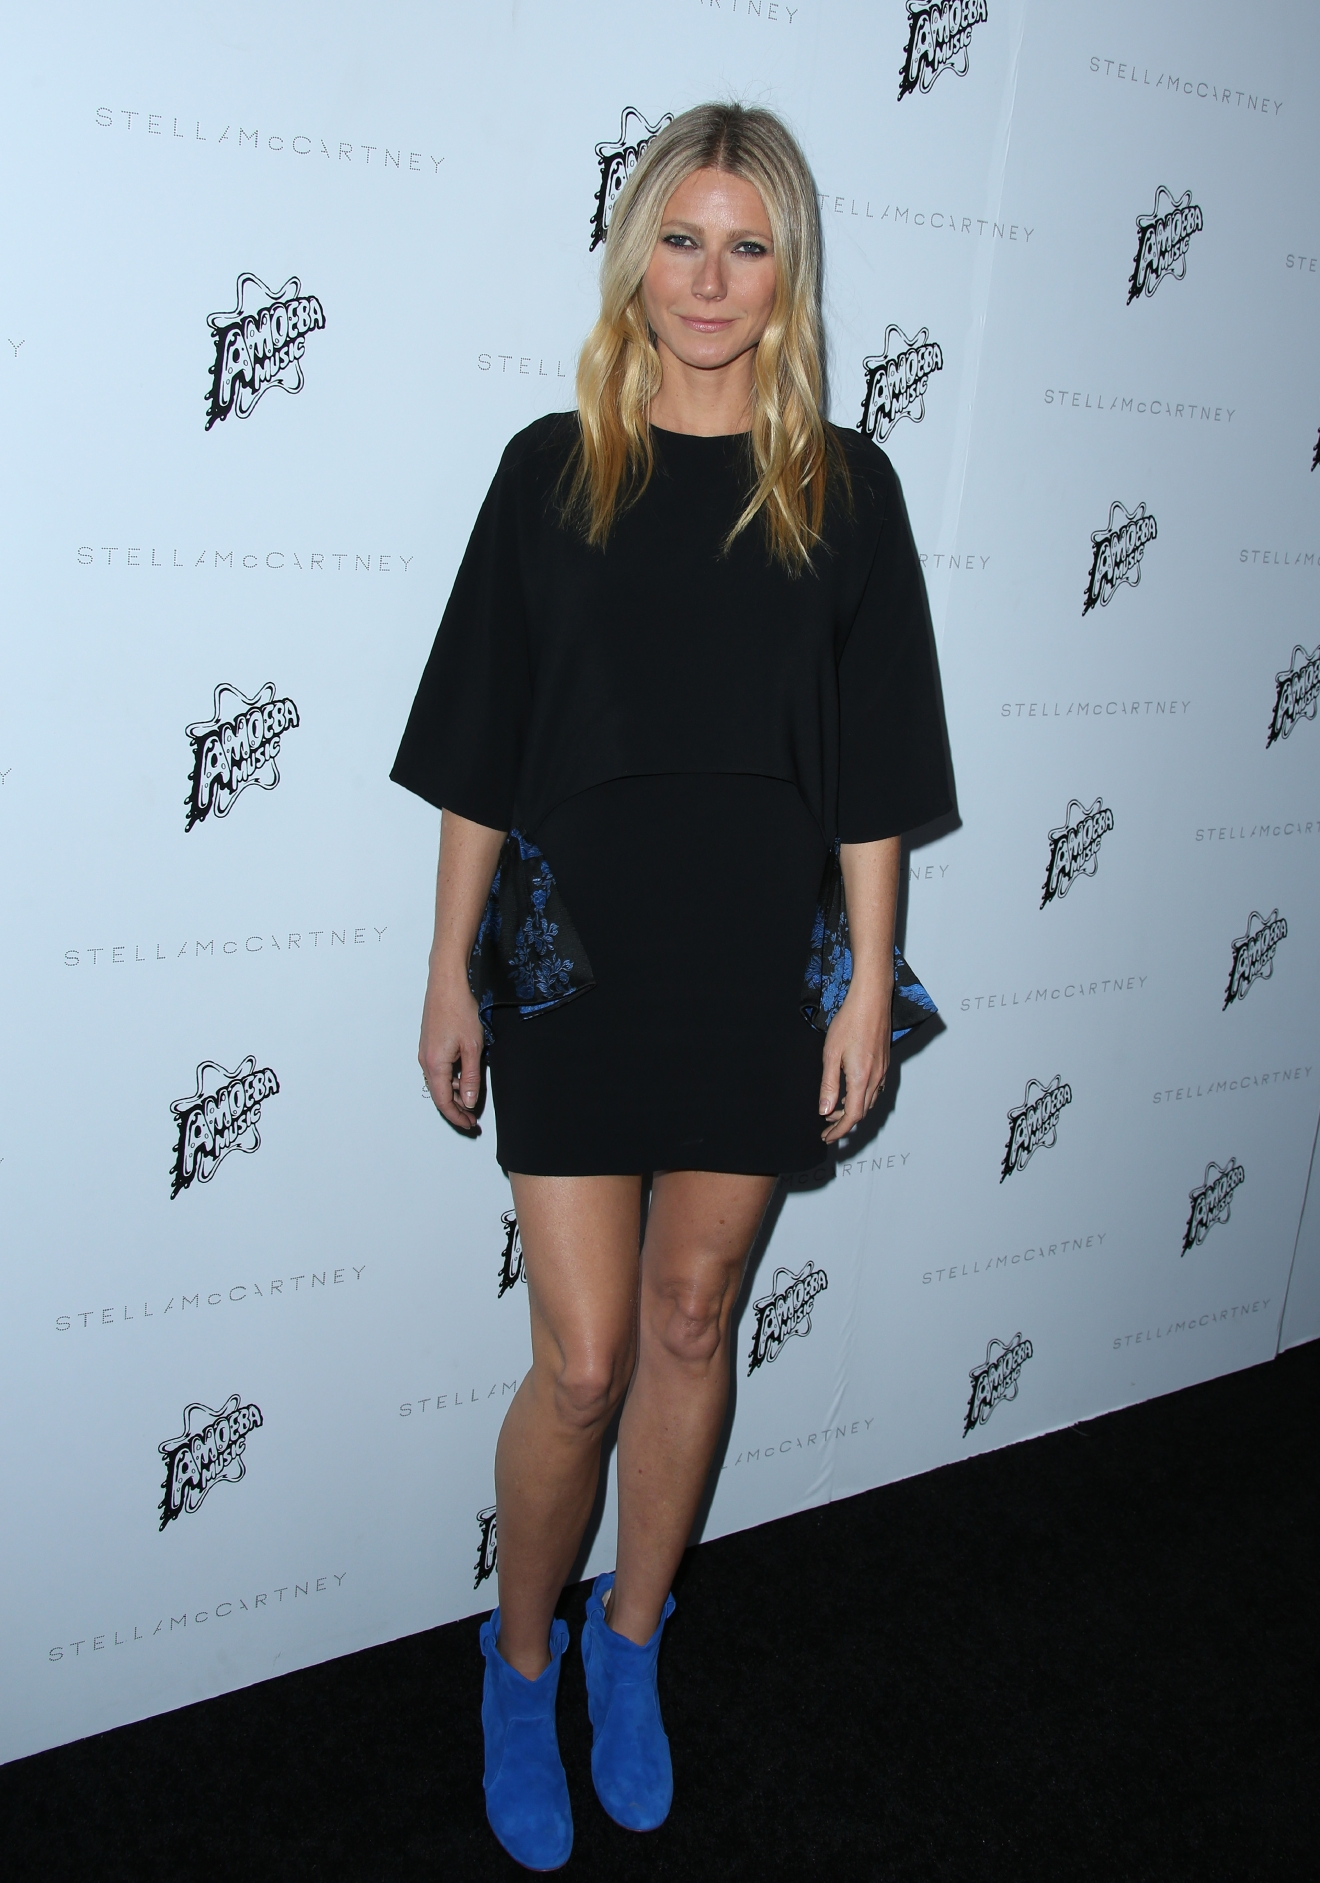 Stella McCartney Autumn 2016 Collection Event held at Amoeba Music Hollywood                                                                      Featuring: Gwyneth Paltrow                                   Where: Hollywood, California, United States                                   When: 12 Jan 2016                                   Credit: FayesVision/WENN.com